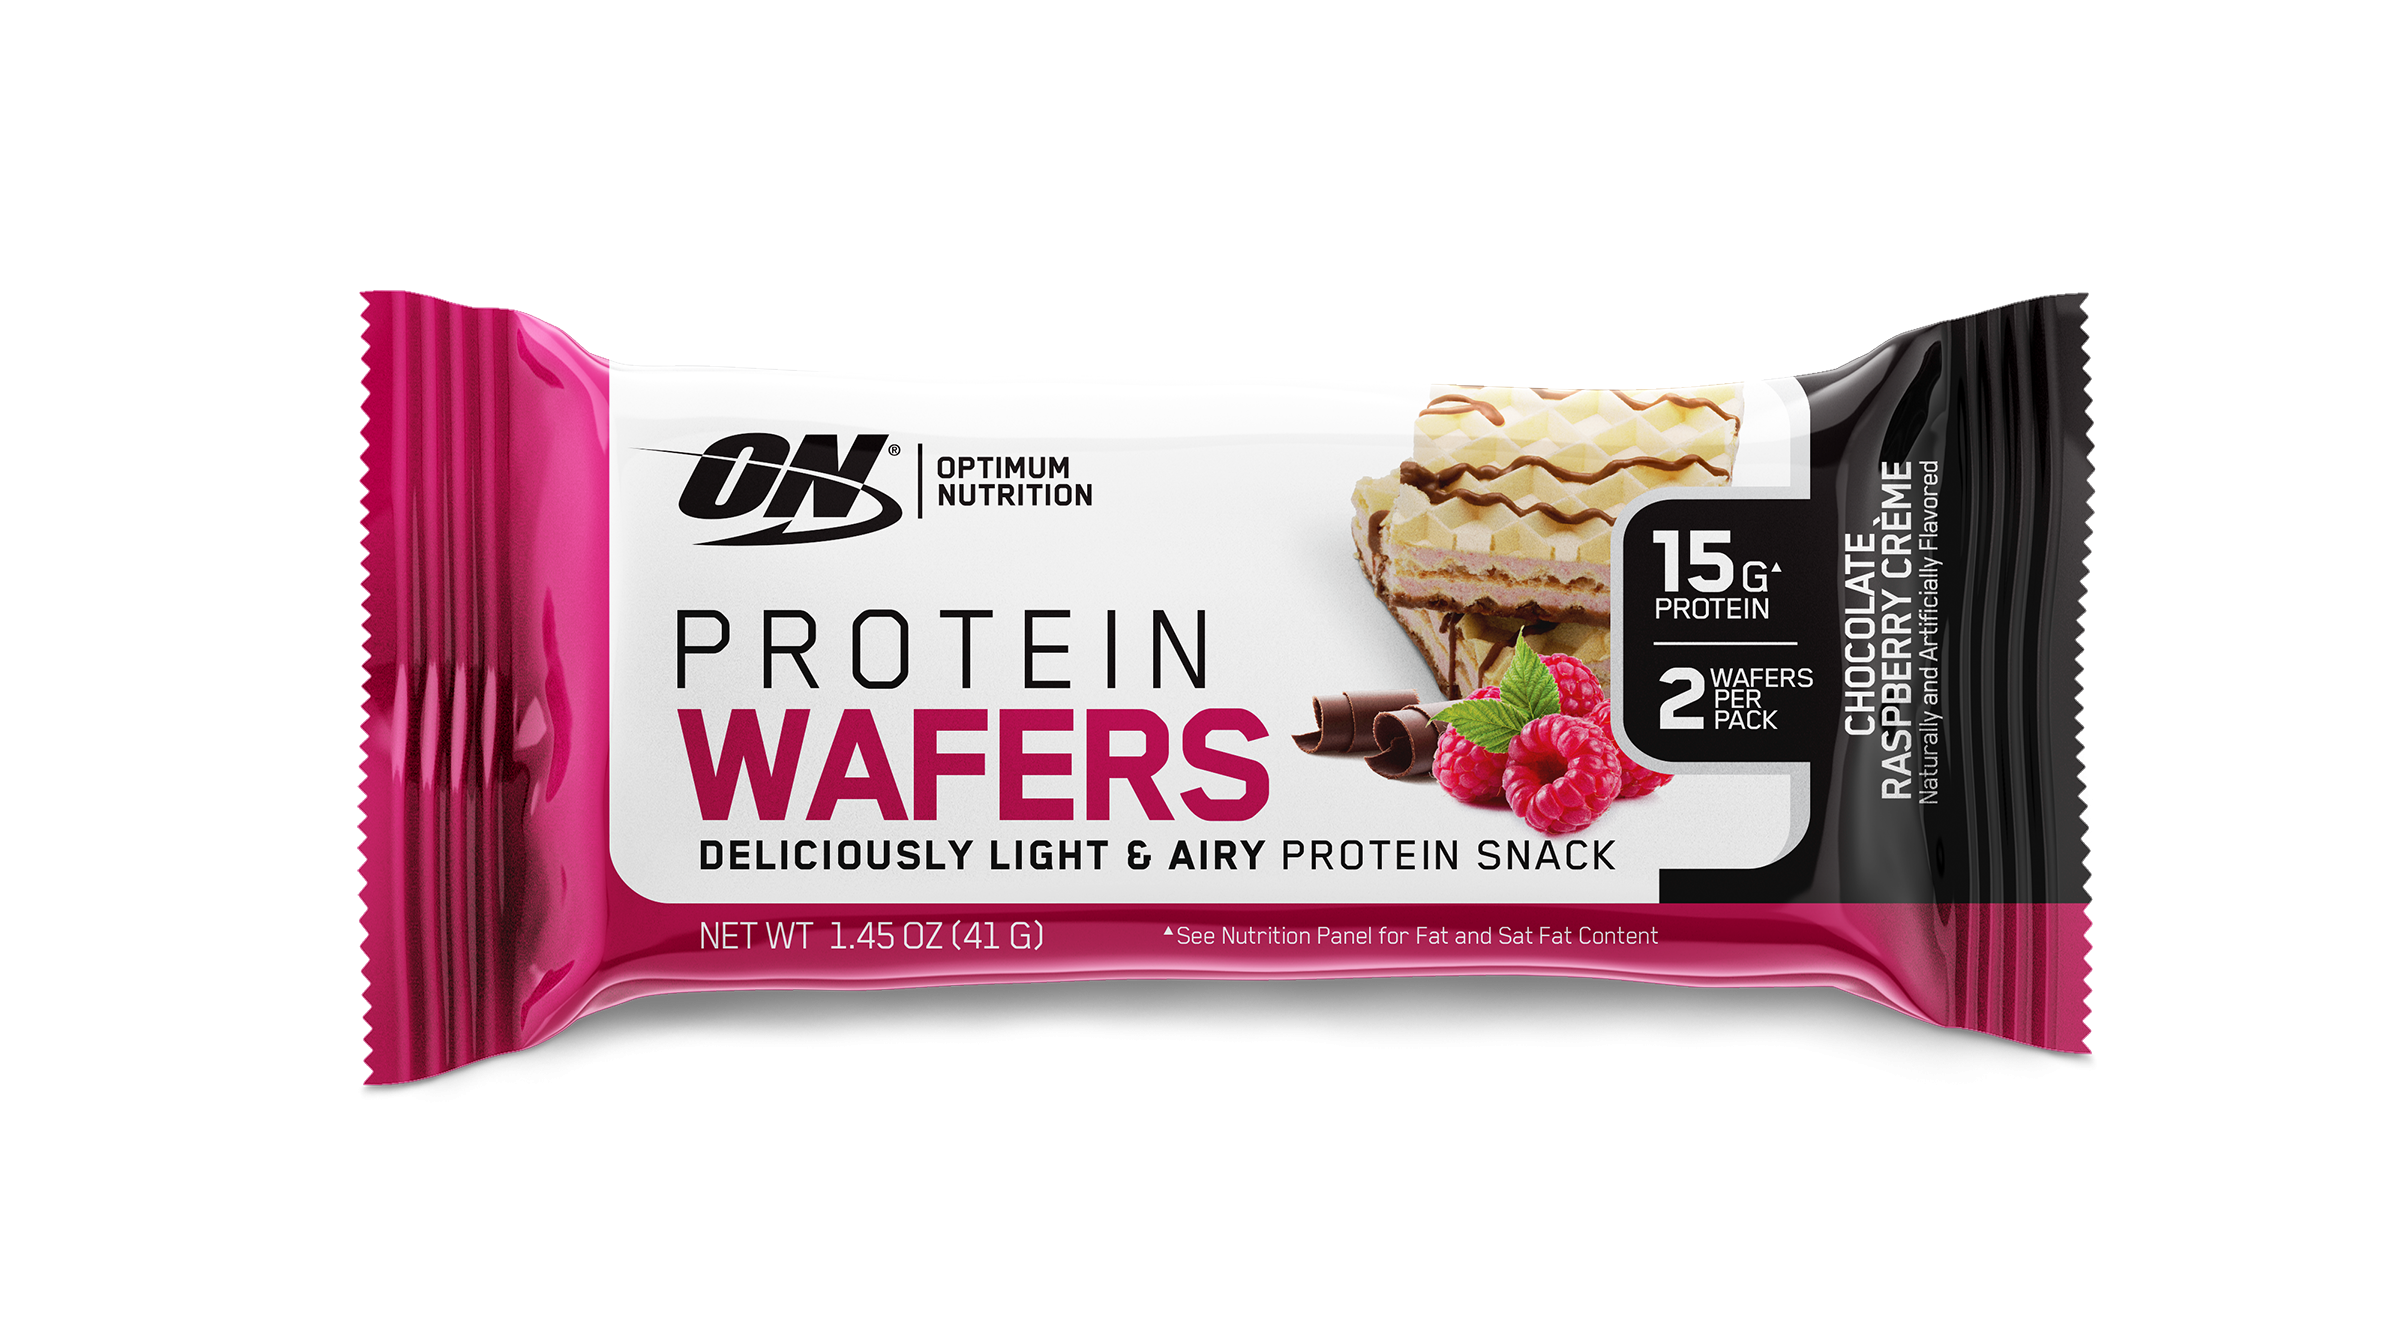 Protein Wafers (Unidade-41g) Optimum Nutrition - 50% OFF